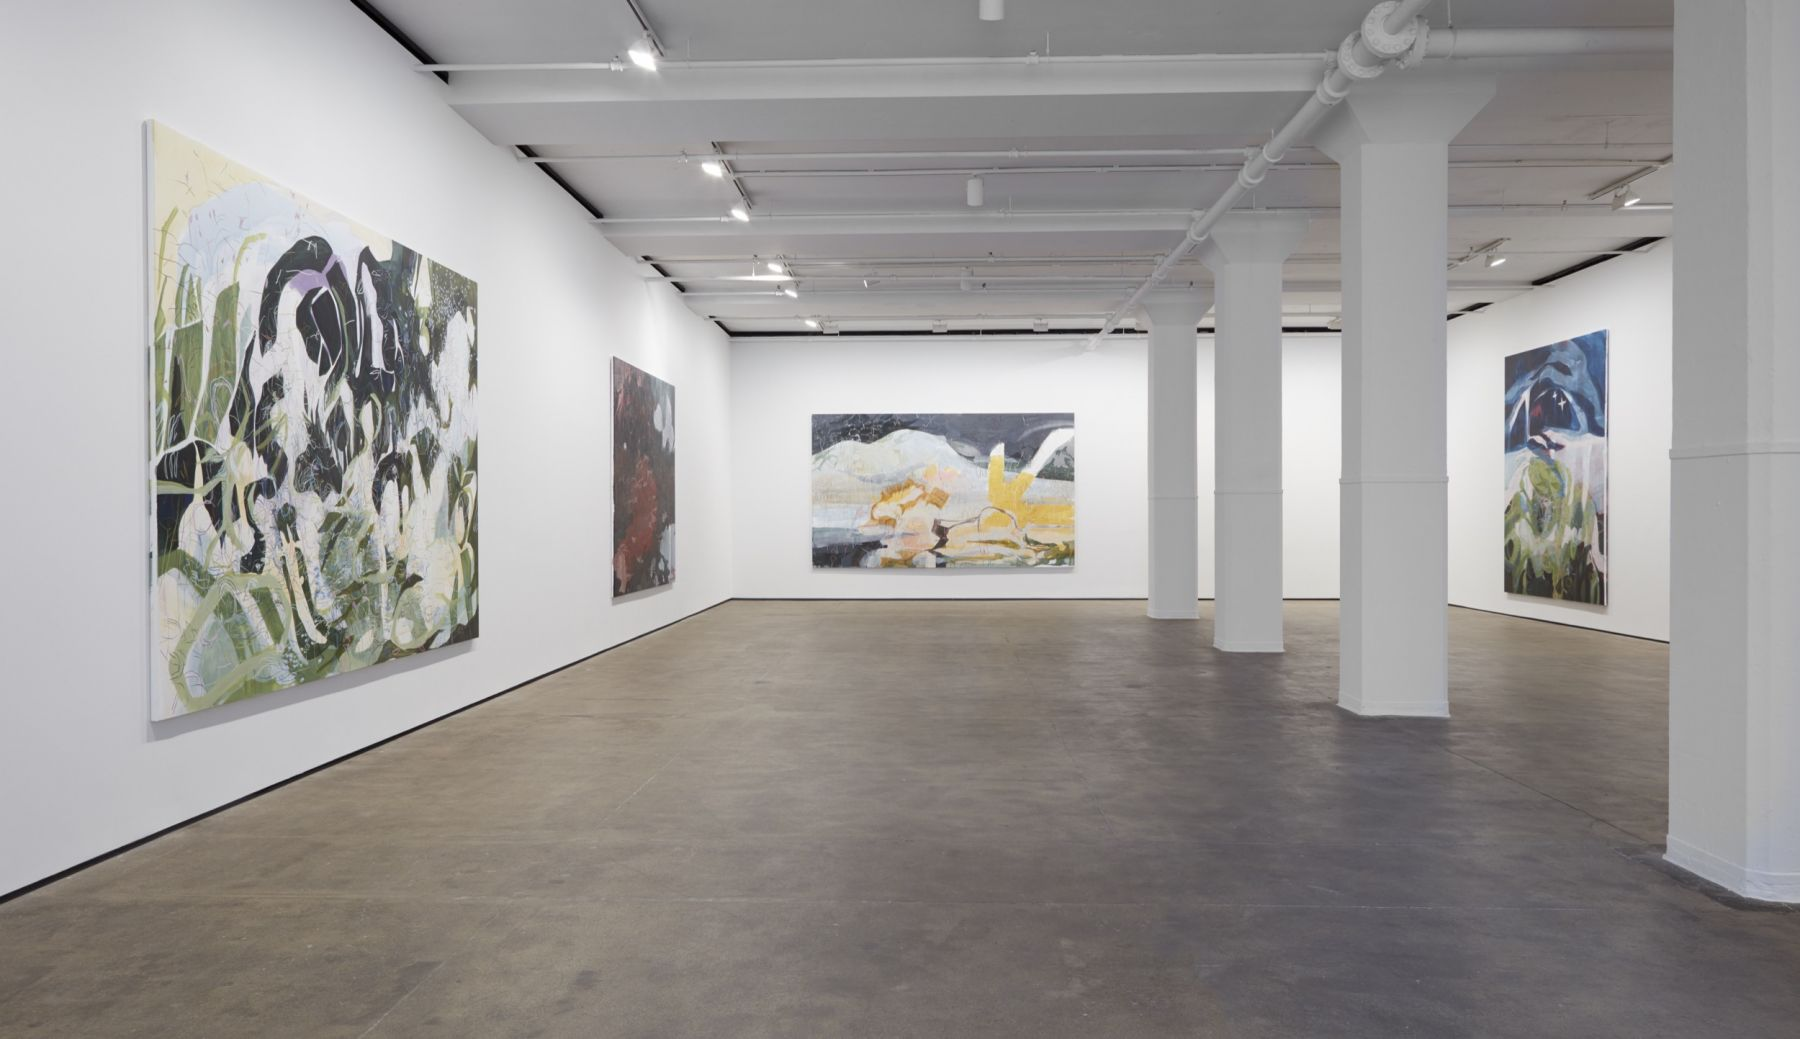 Installation view of Janaina Tschäpe: HumidGray and ShadowLake at Sean Kelly, New York